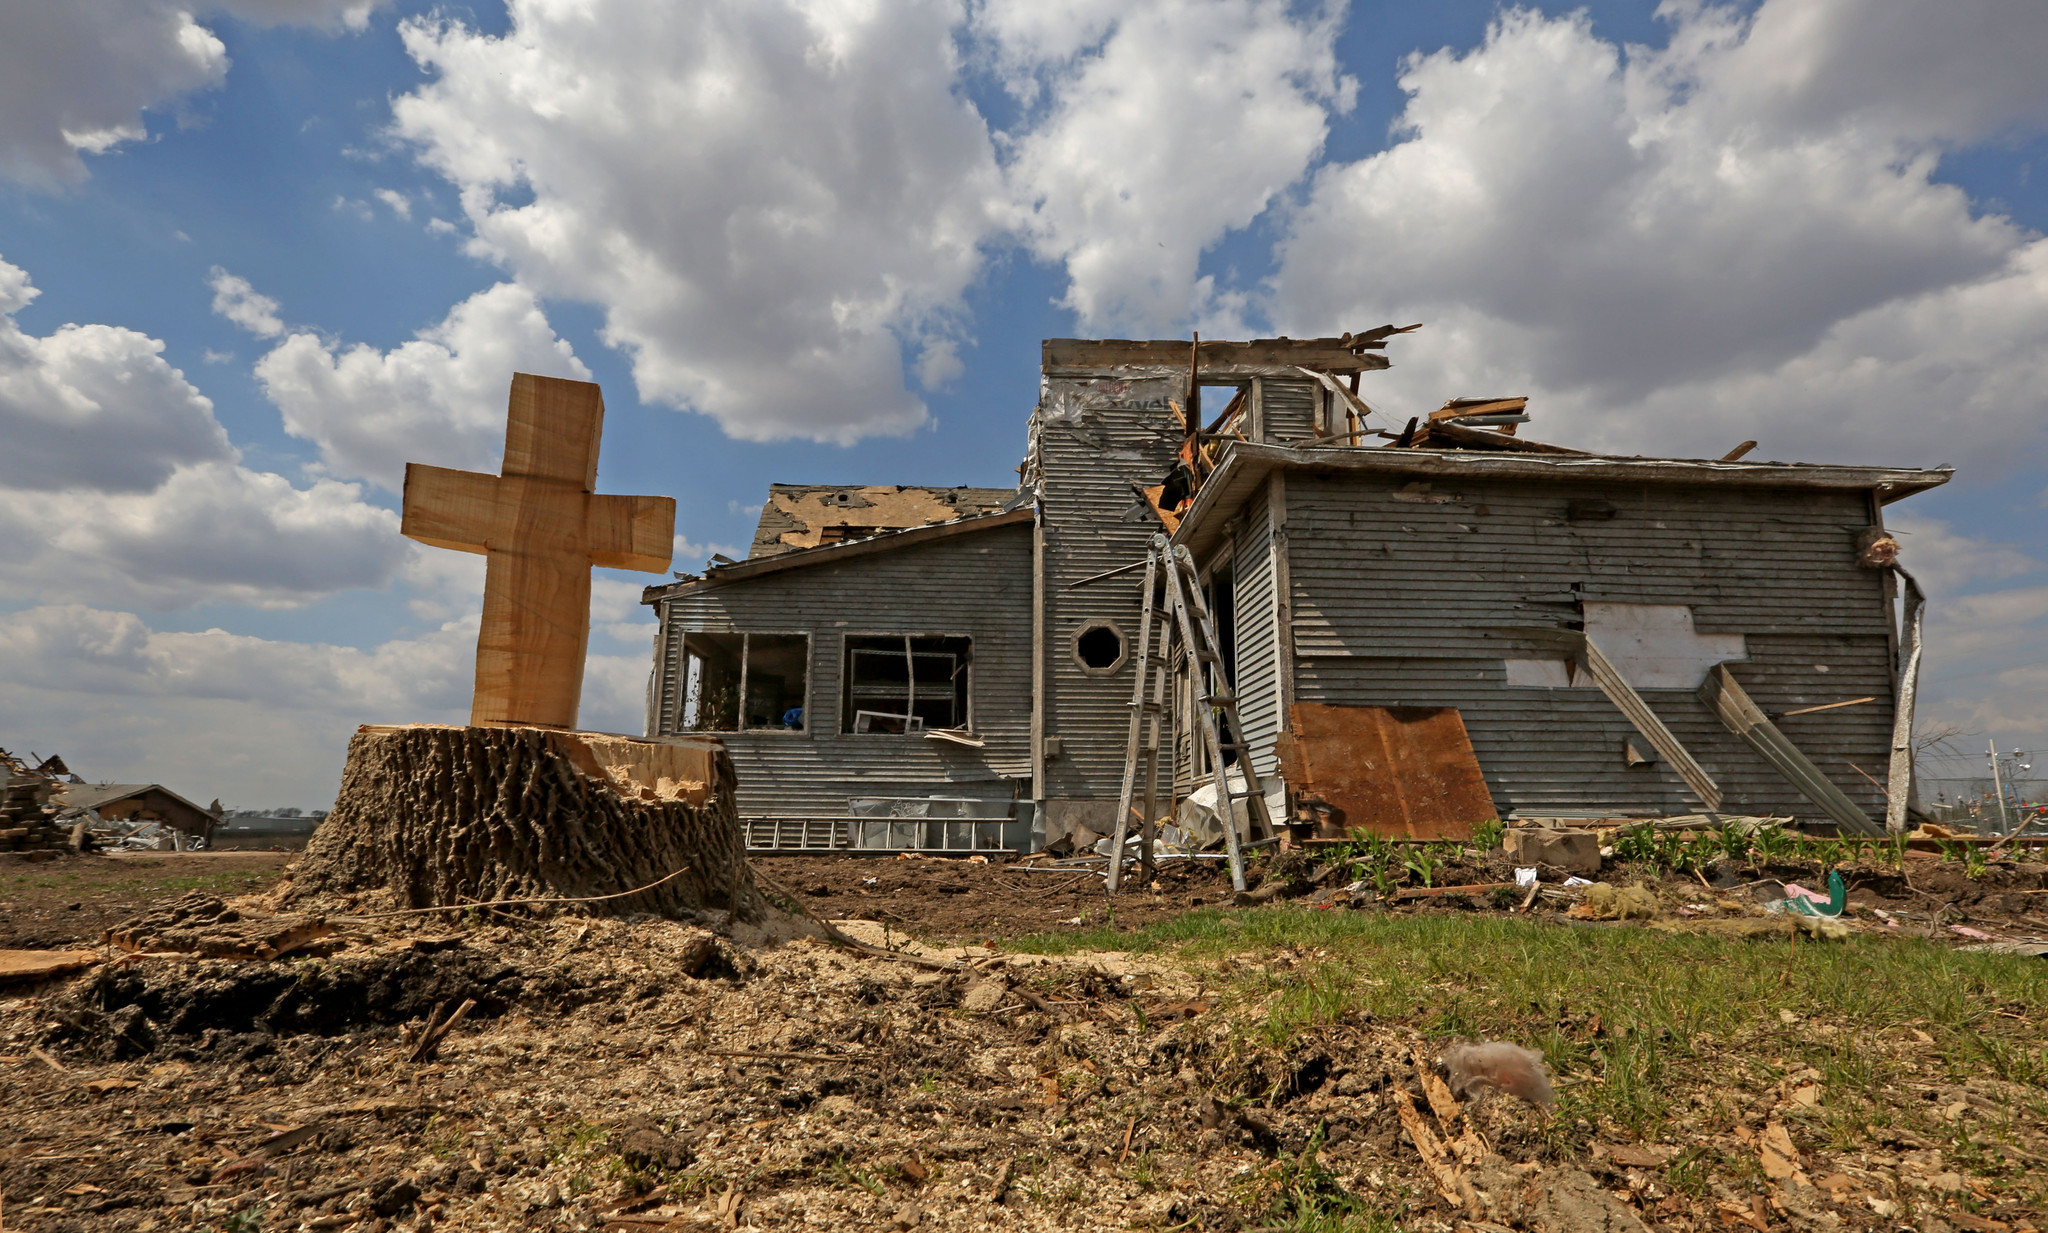 Illinois Tornado Raises Concerns On Warnings In Rural